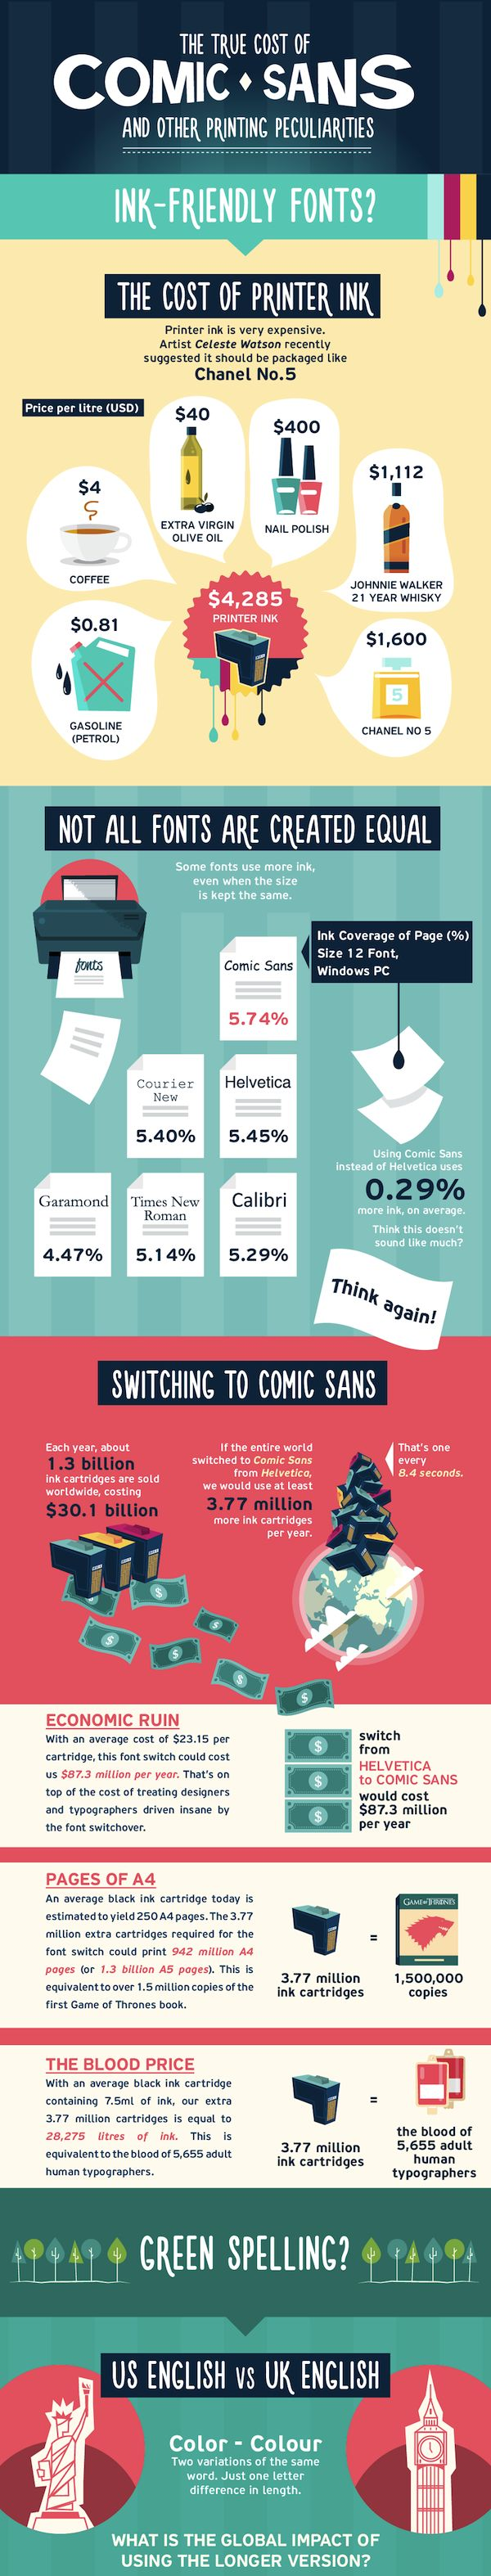 Infographic: How Printing Comic Sans And UK English Would Cost More - DesignTAXI.com